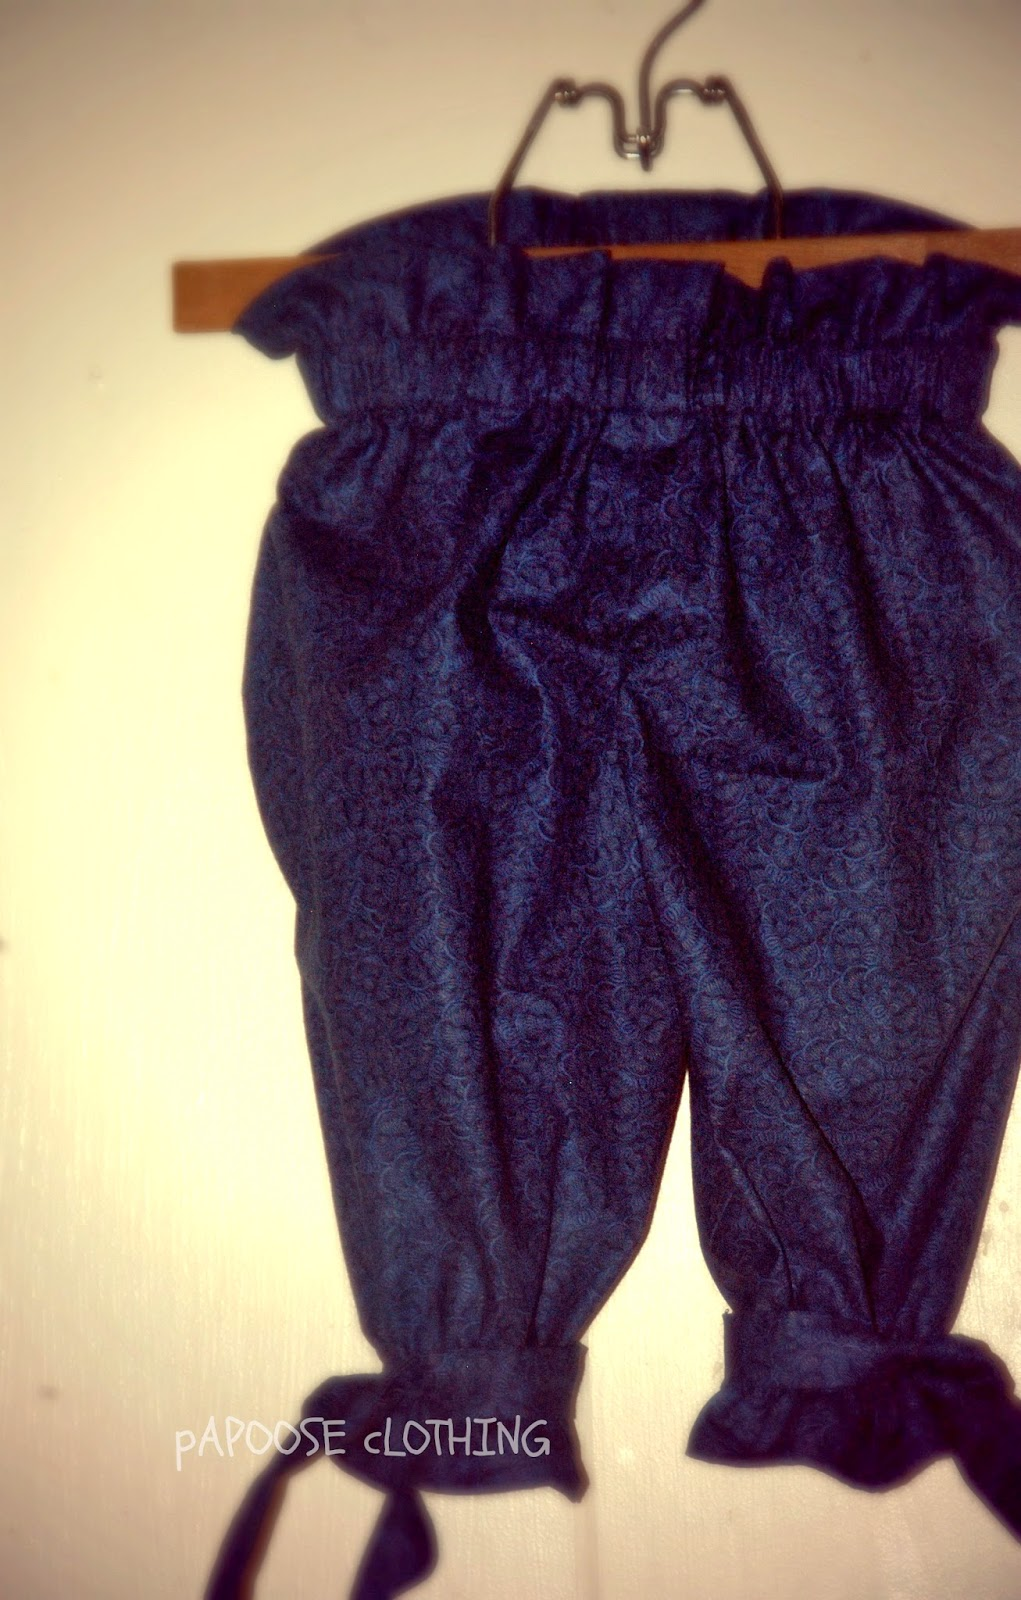 http://www.papooseclothing.com/store/p30/Singin%27_the_Blues_Ruffle_Top_Gathered_Capri_Pants.html